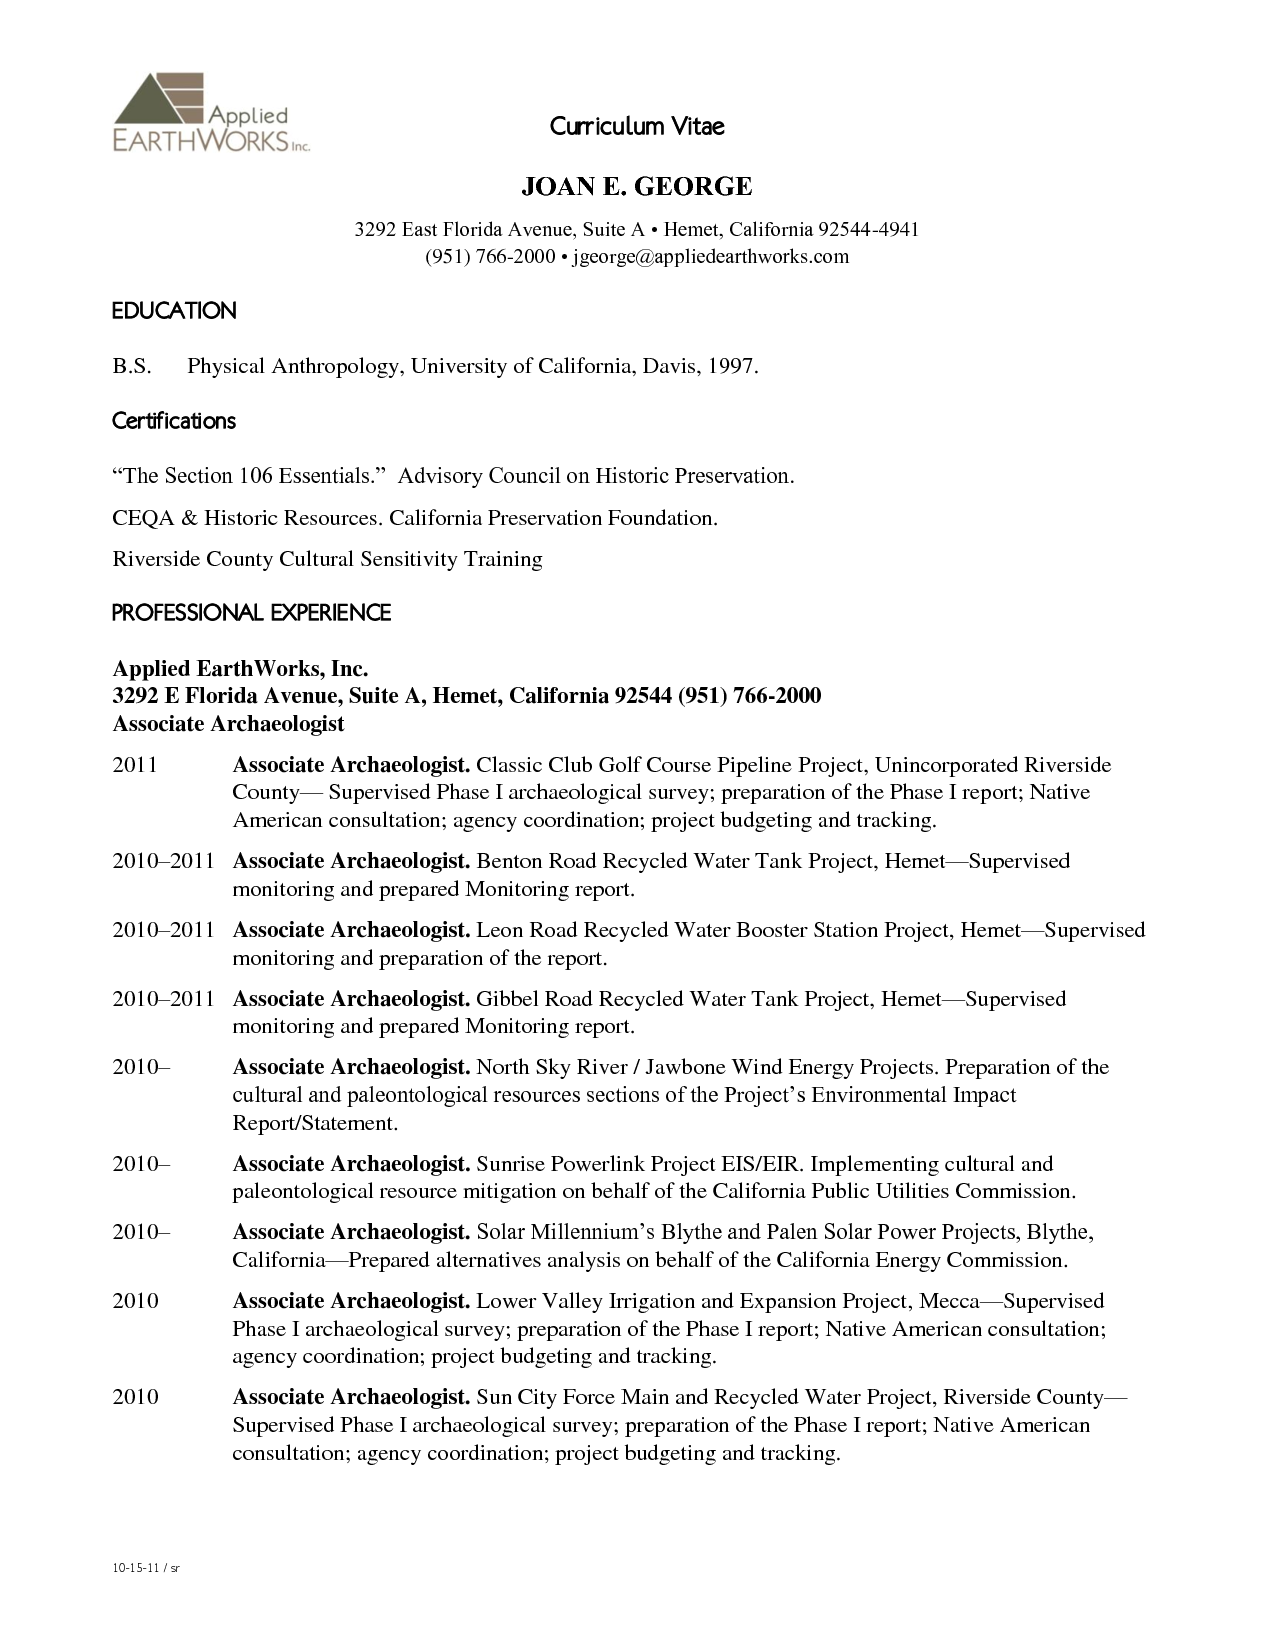 Resume Template Download Pdf Resume Template Download Pdf Fill In